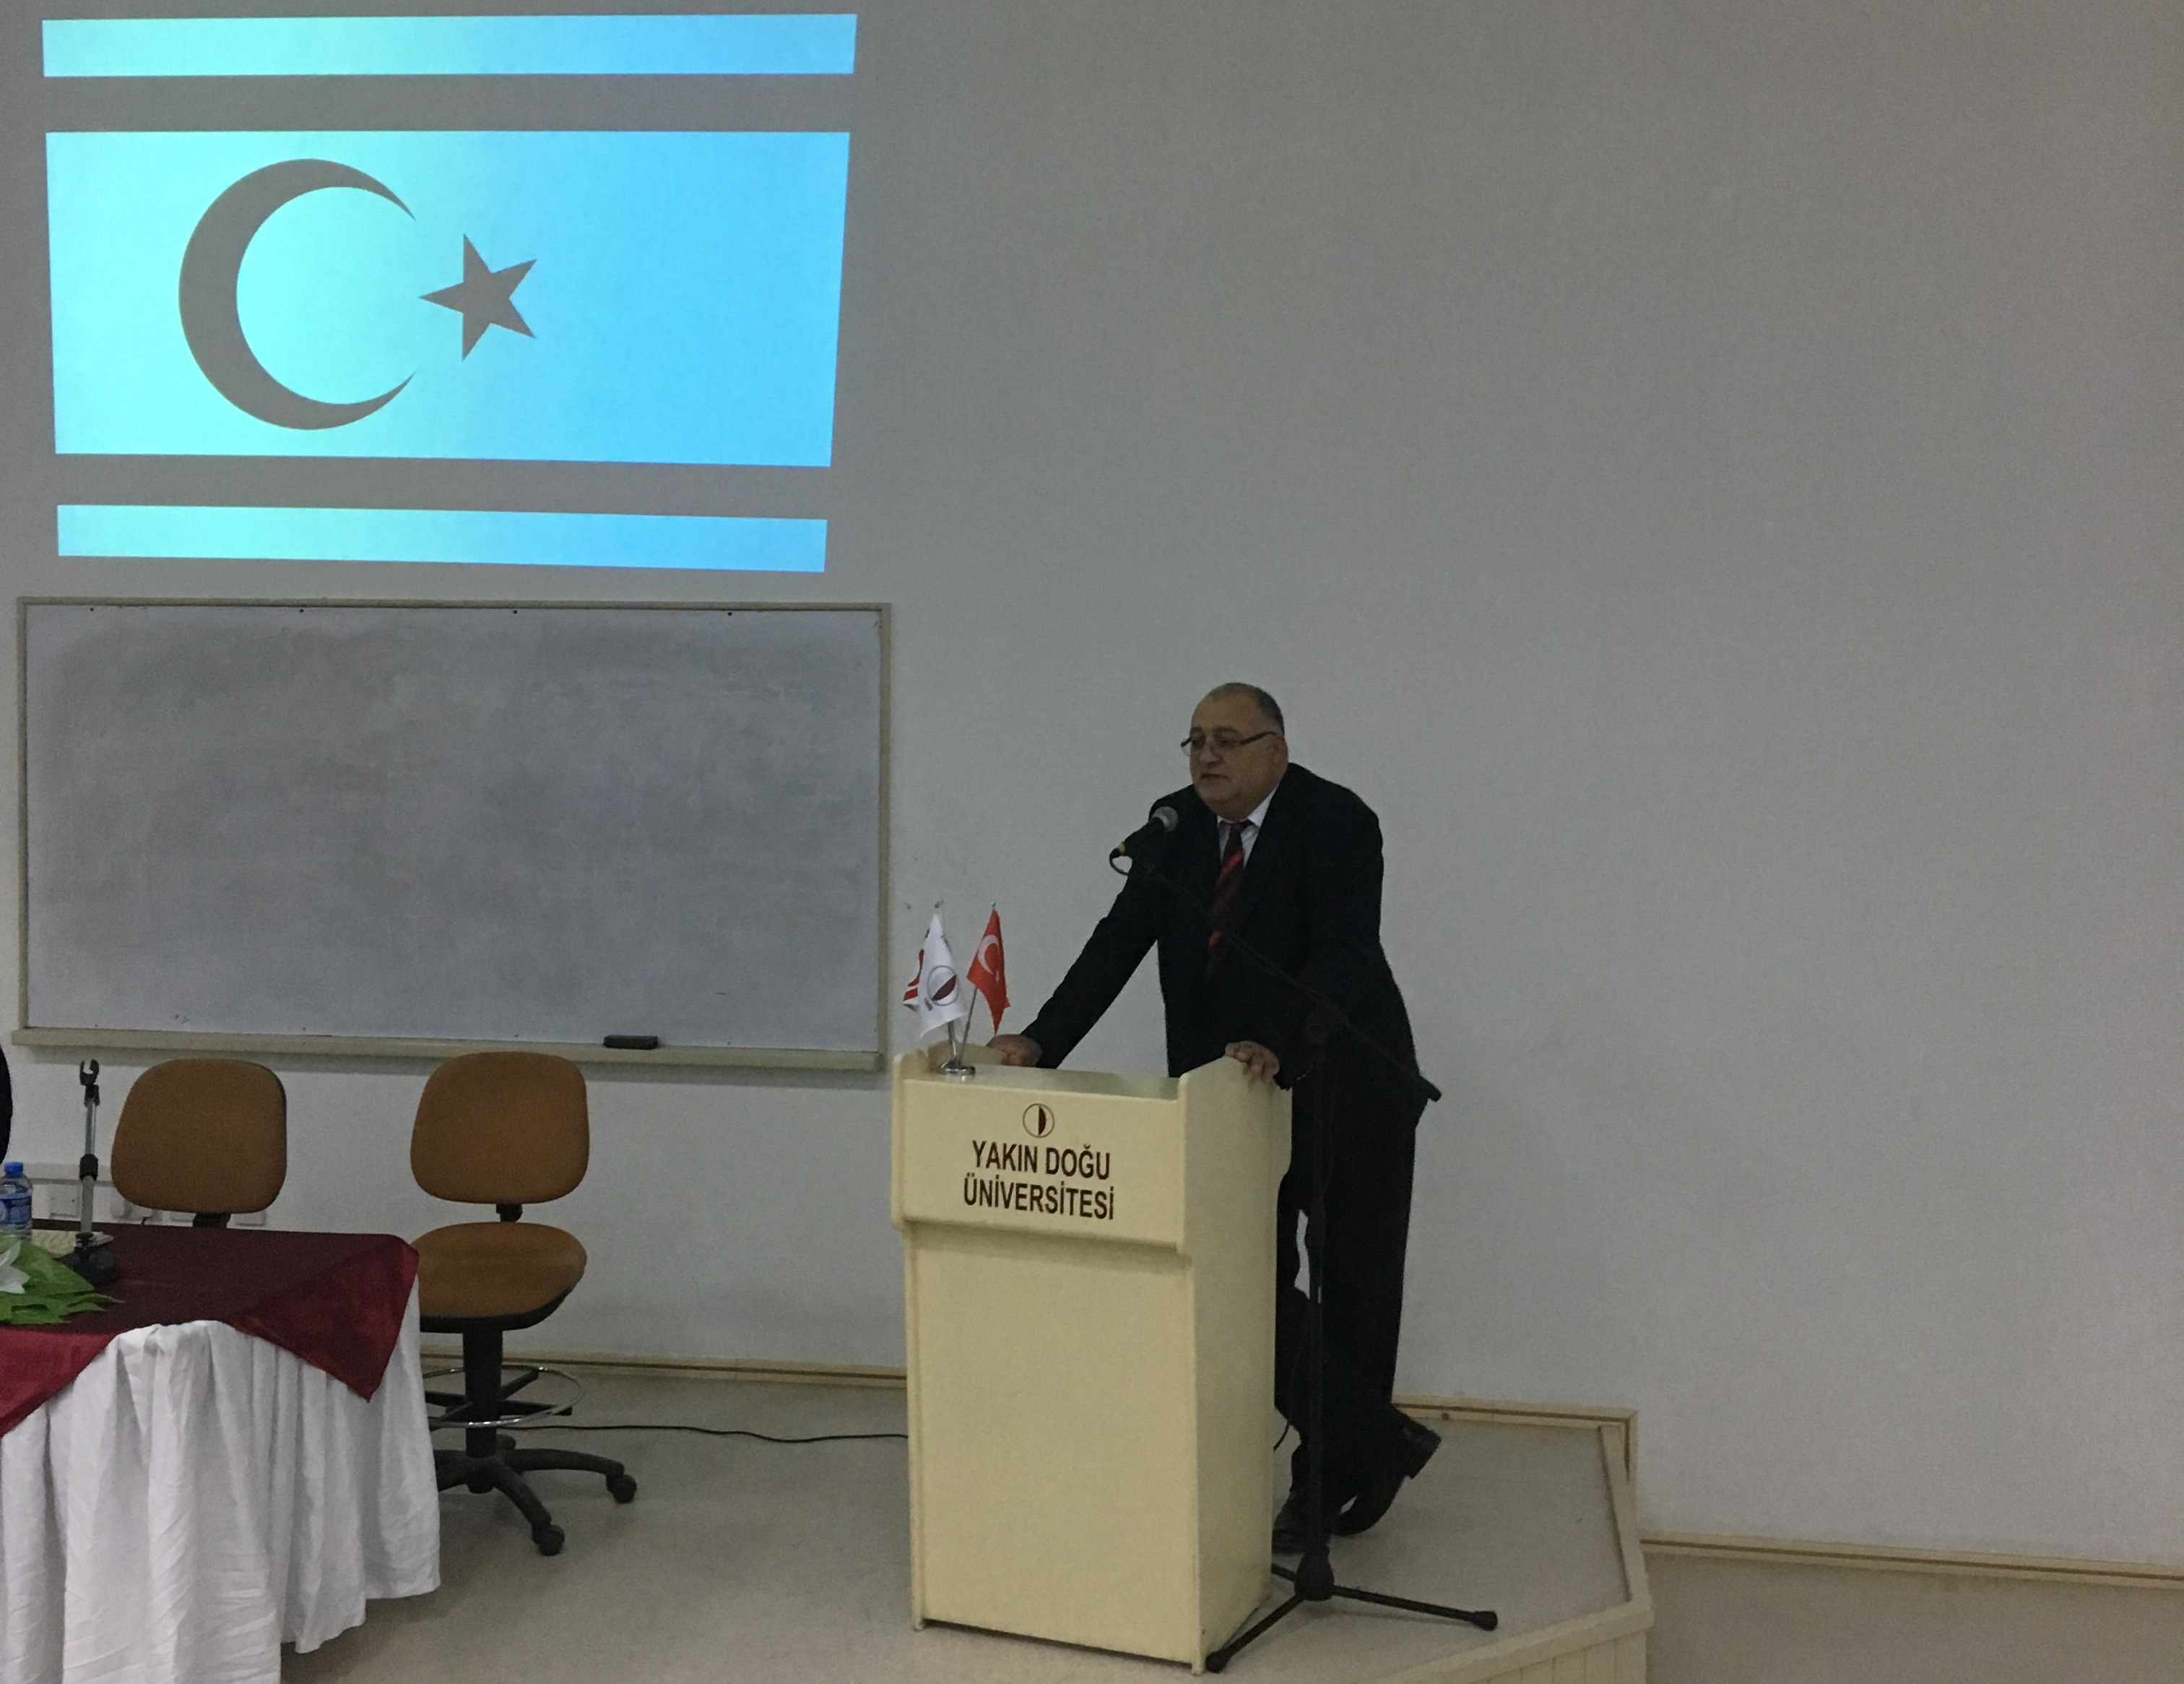 NEU Faculty of Arts and Sciences along with Atatürk Faculty of Education celebrated TRNC Republic Day with a panel